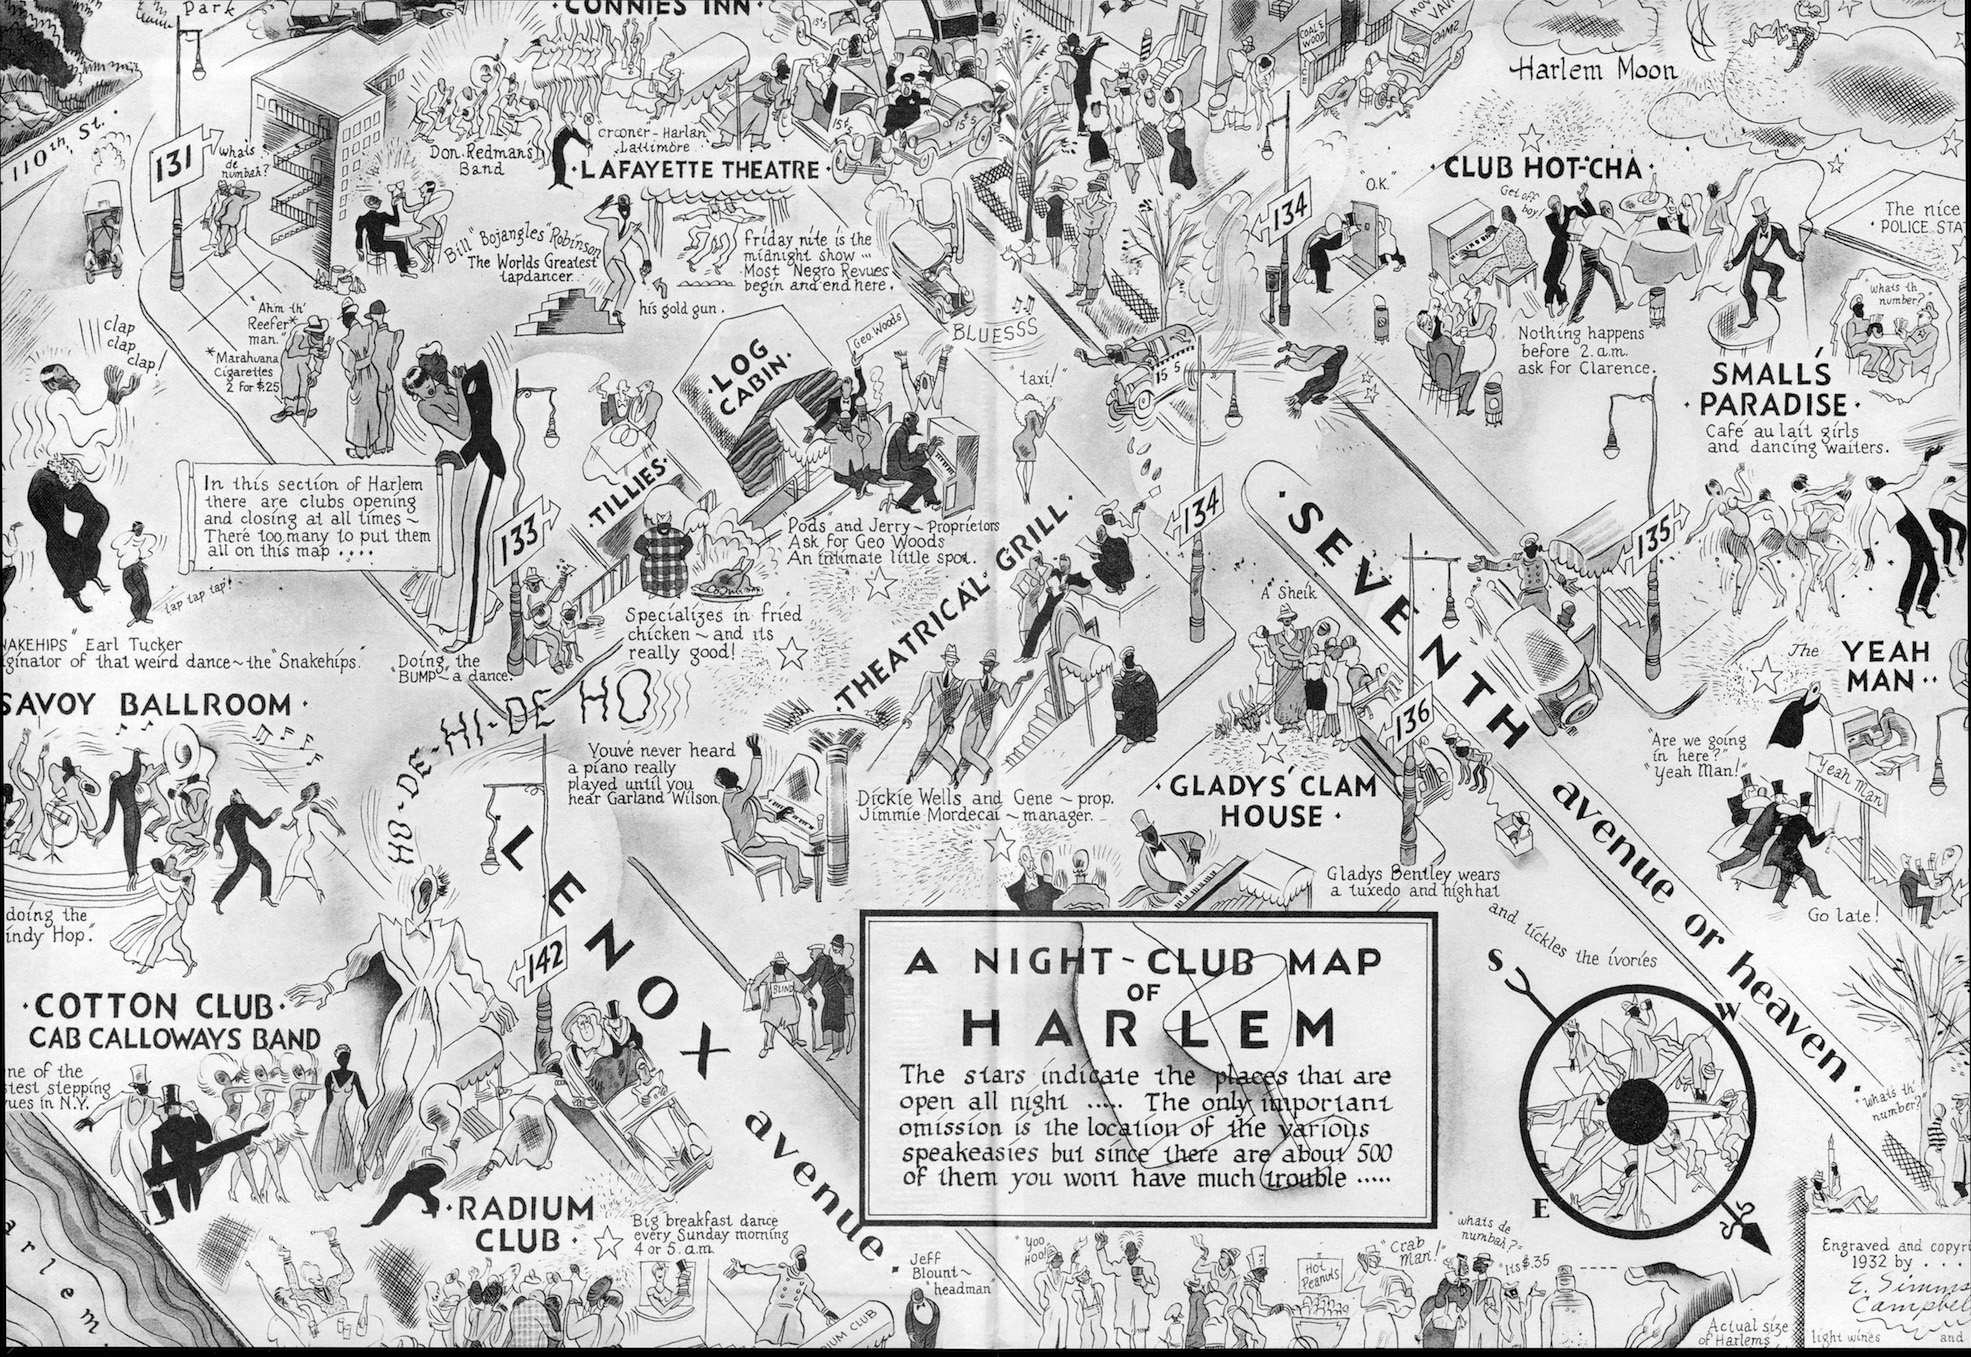 A map showing the night clubs scene in Harlem in 1932. Among them, of course, the Cotton Club with Cab Calloways Band as resident orchestra